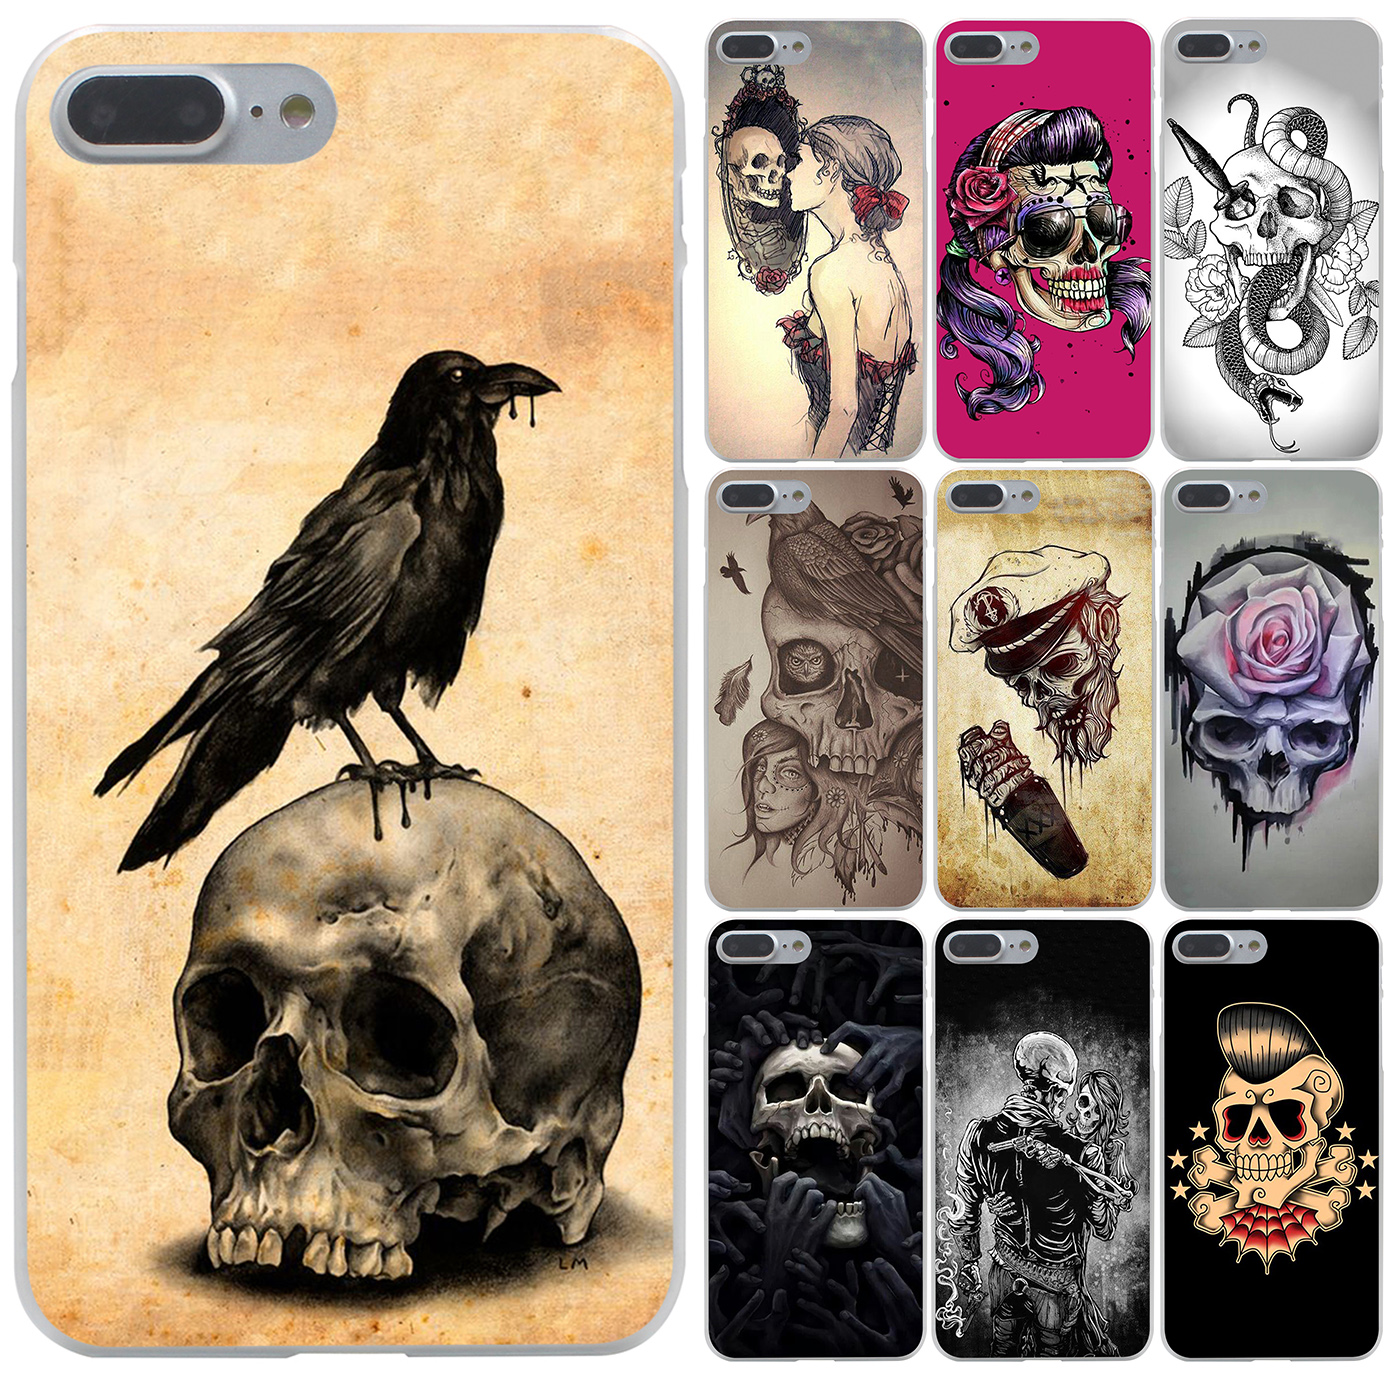 flower Skull Lady Man Painted Hard Case Transparent Cover for iPhone 7 7 Plus 6 6s Plus 5 5s 5c SE 4 4s